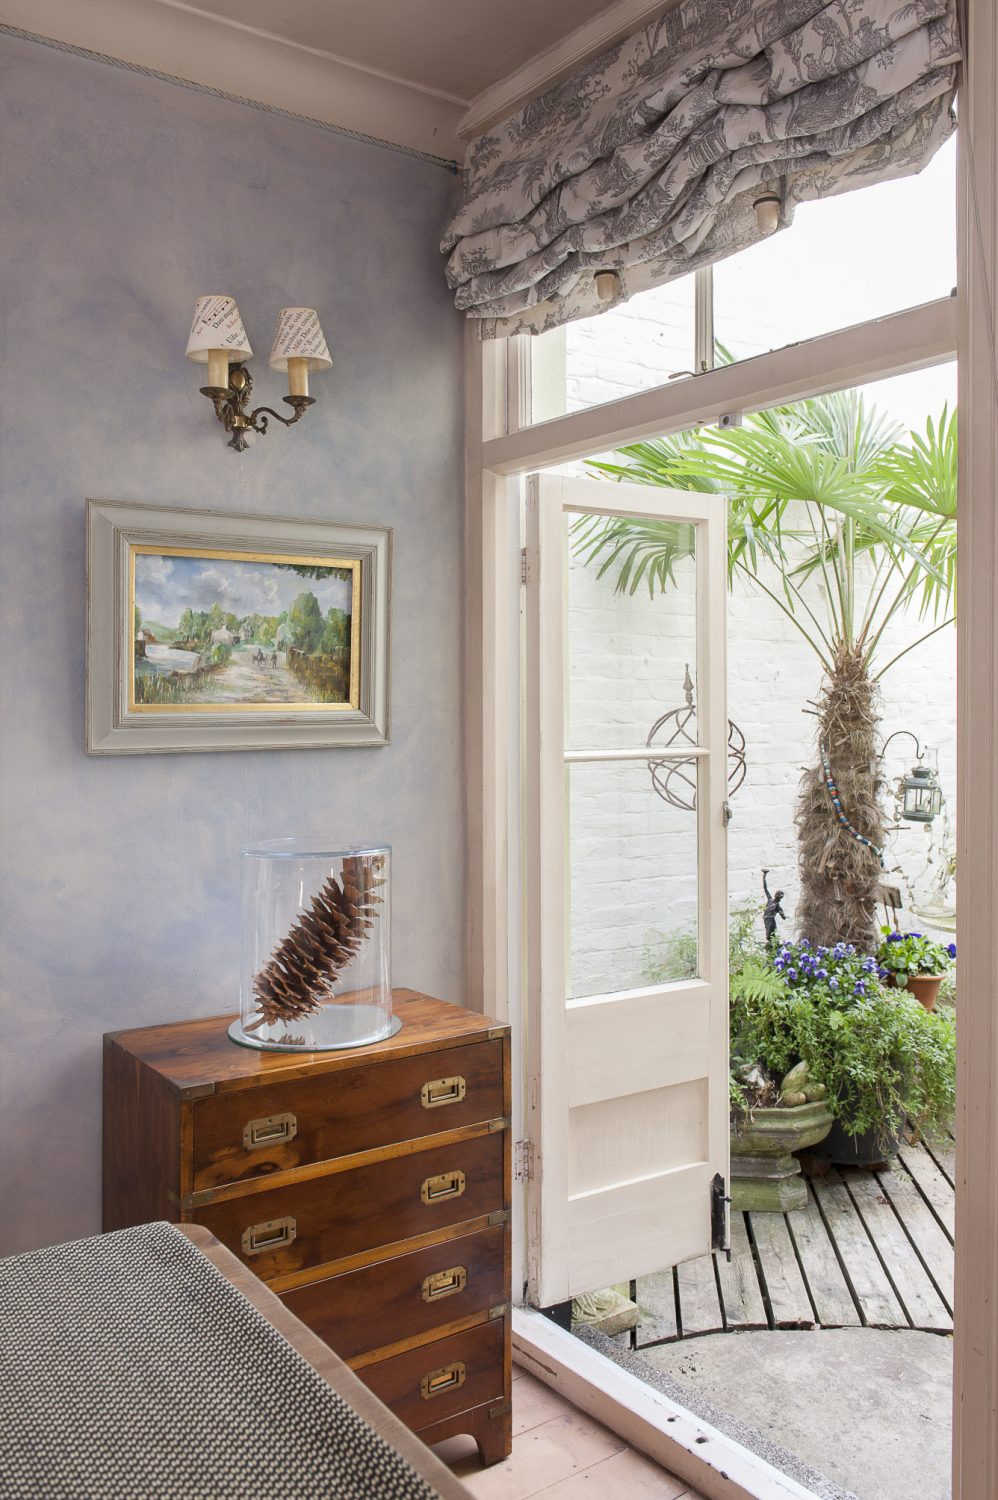 A door from the dining room opens into a pretty courtyard garden